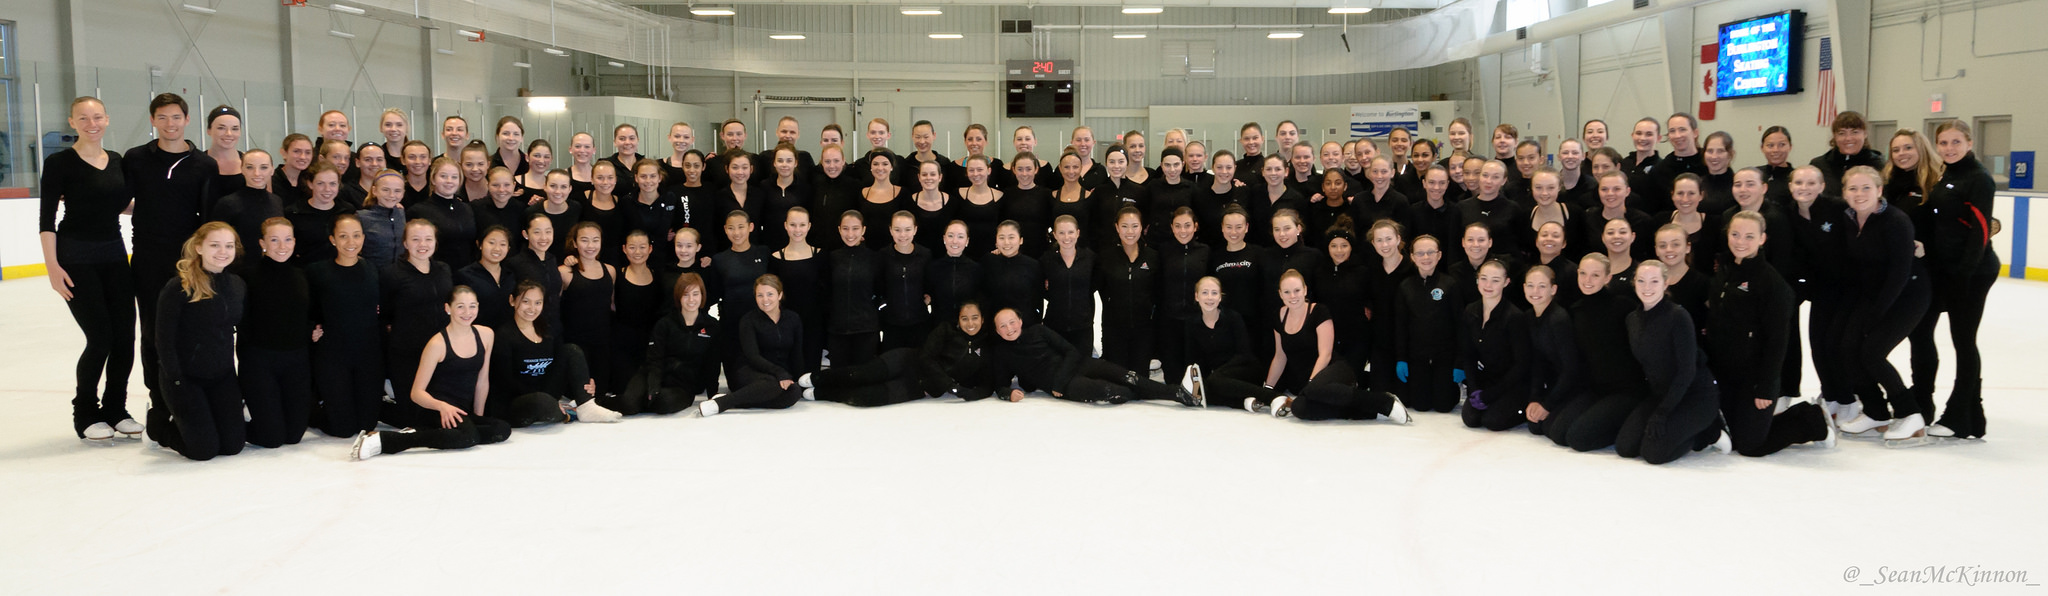 4th Annual NEXXICE International Synchro Camp